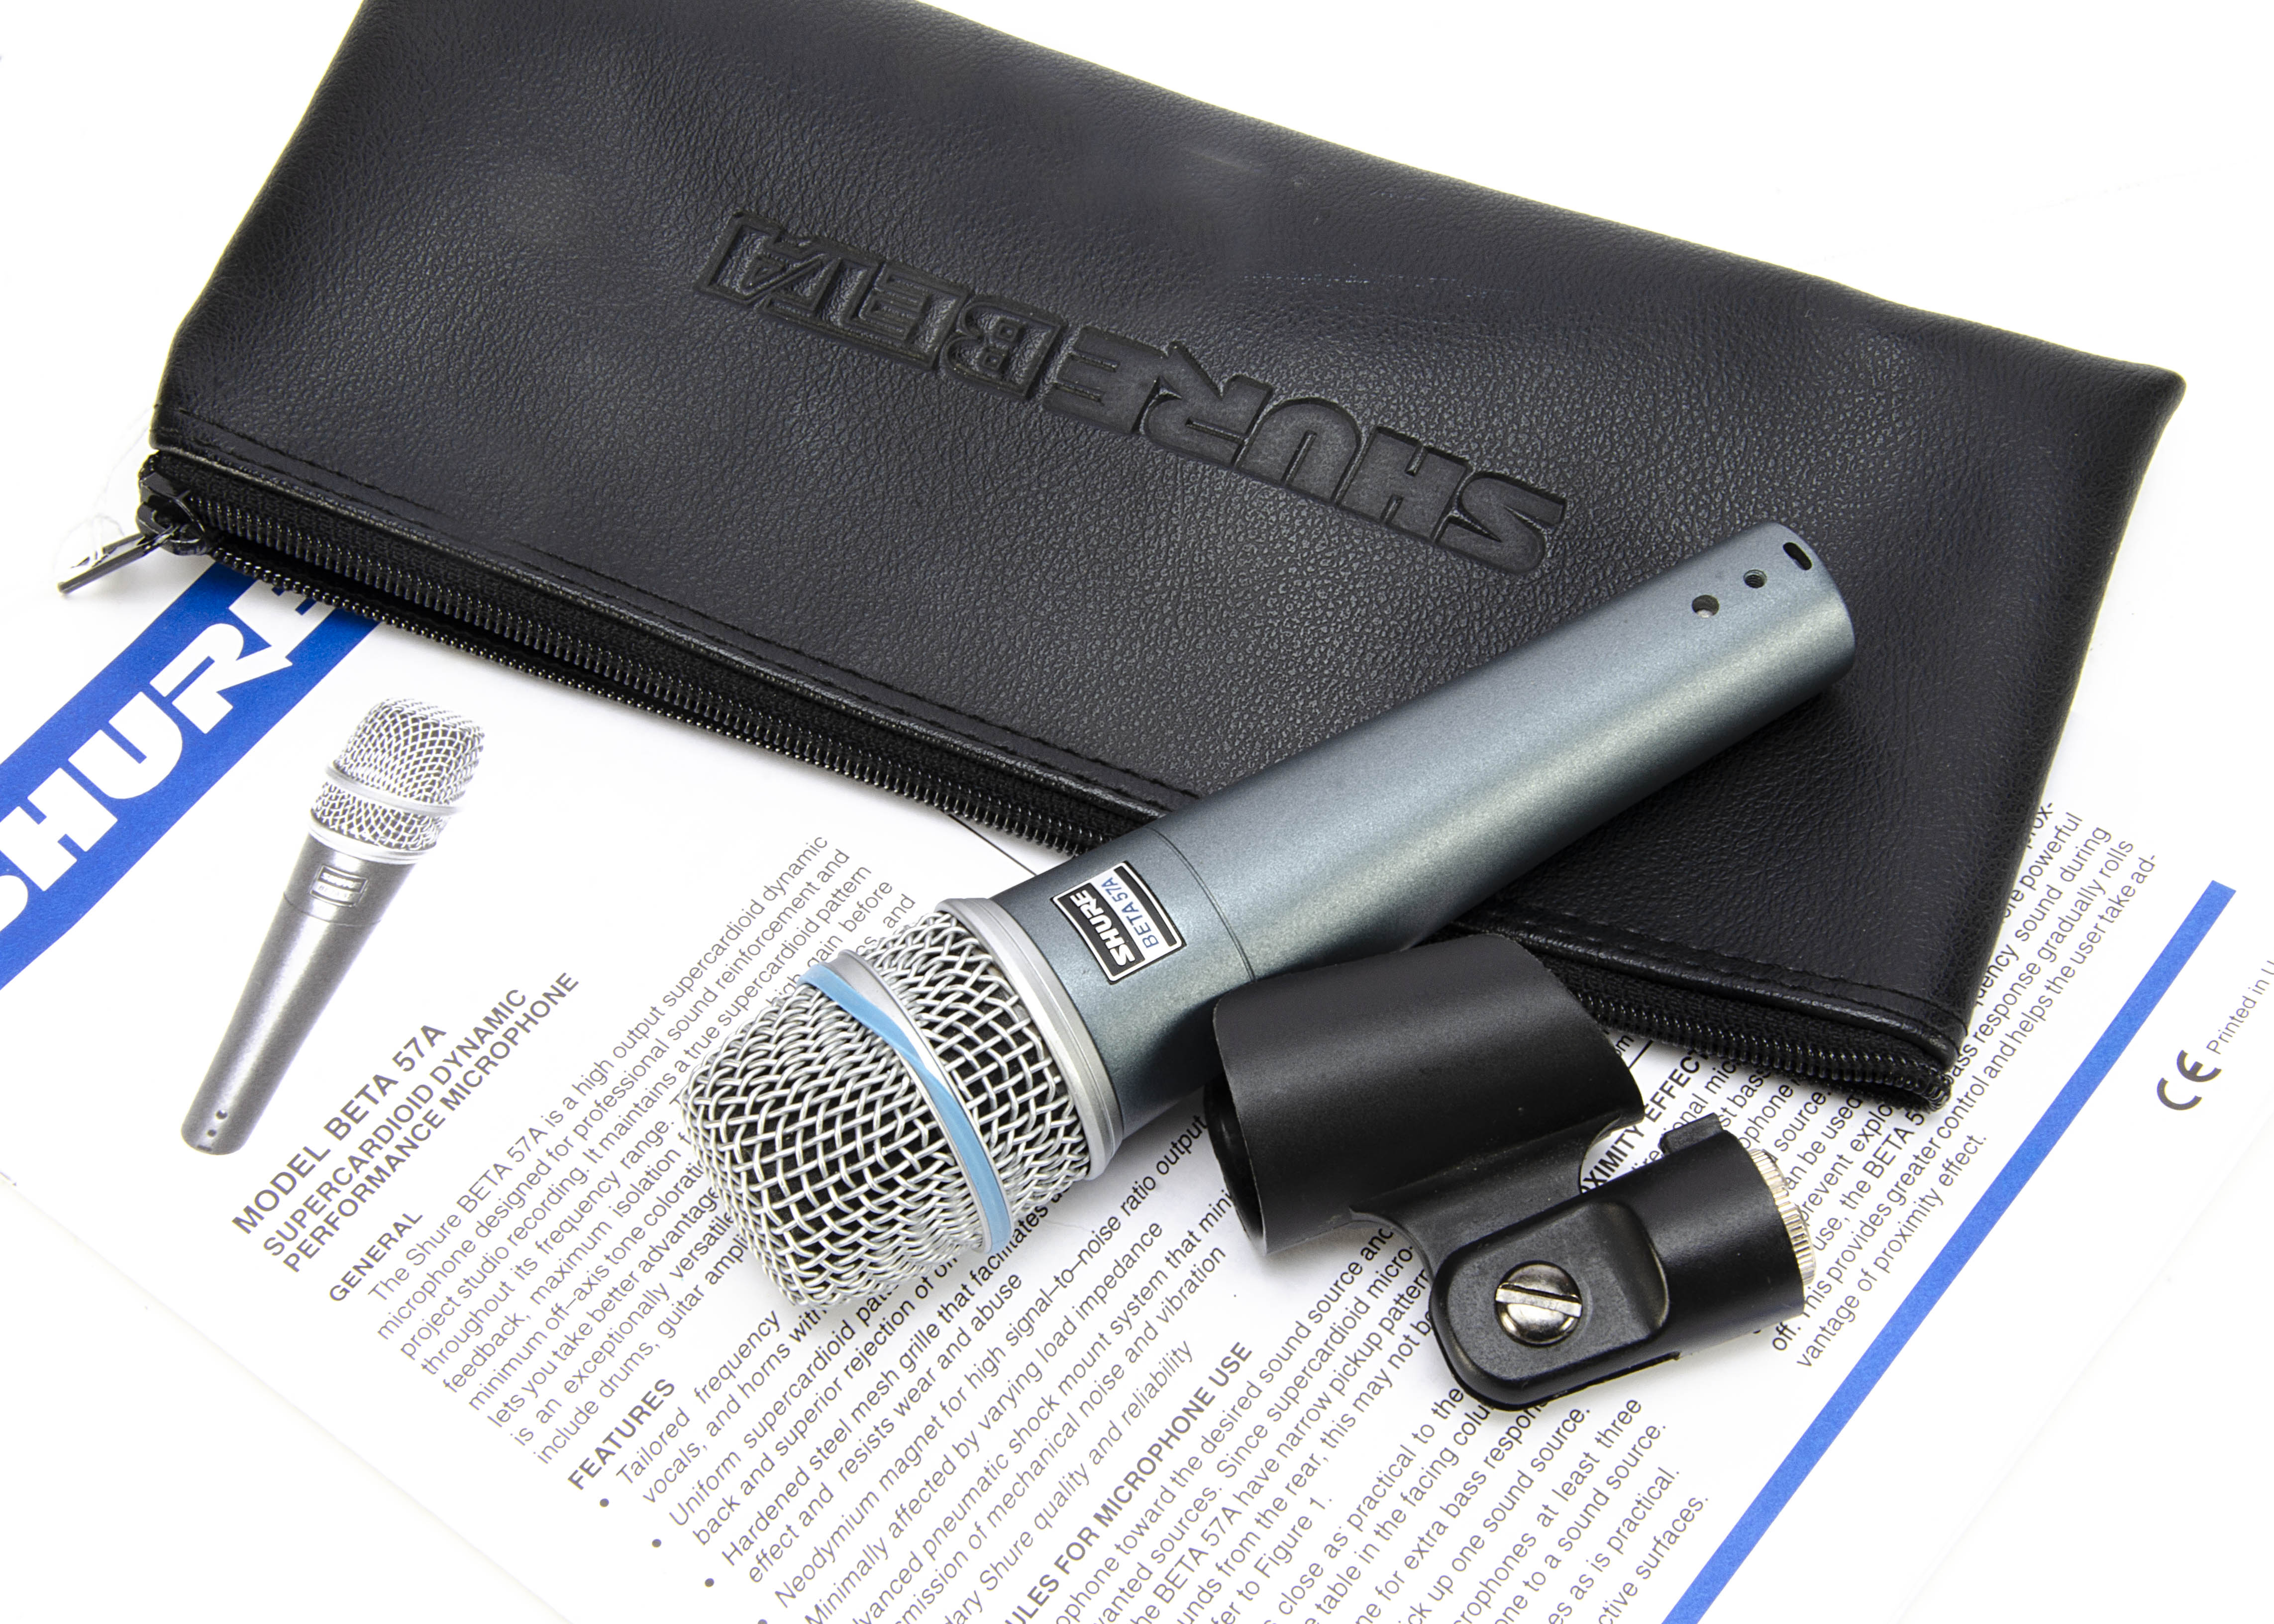 Shure Microphone, a Shure Beta 57A with carry case and stand attachment, very good condition,